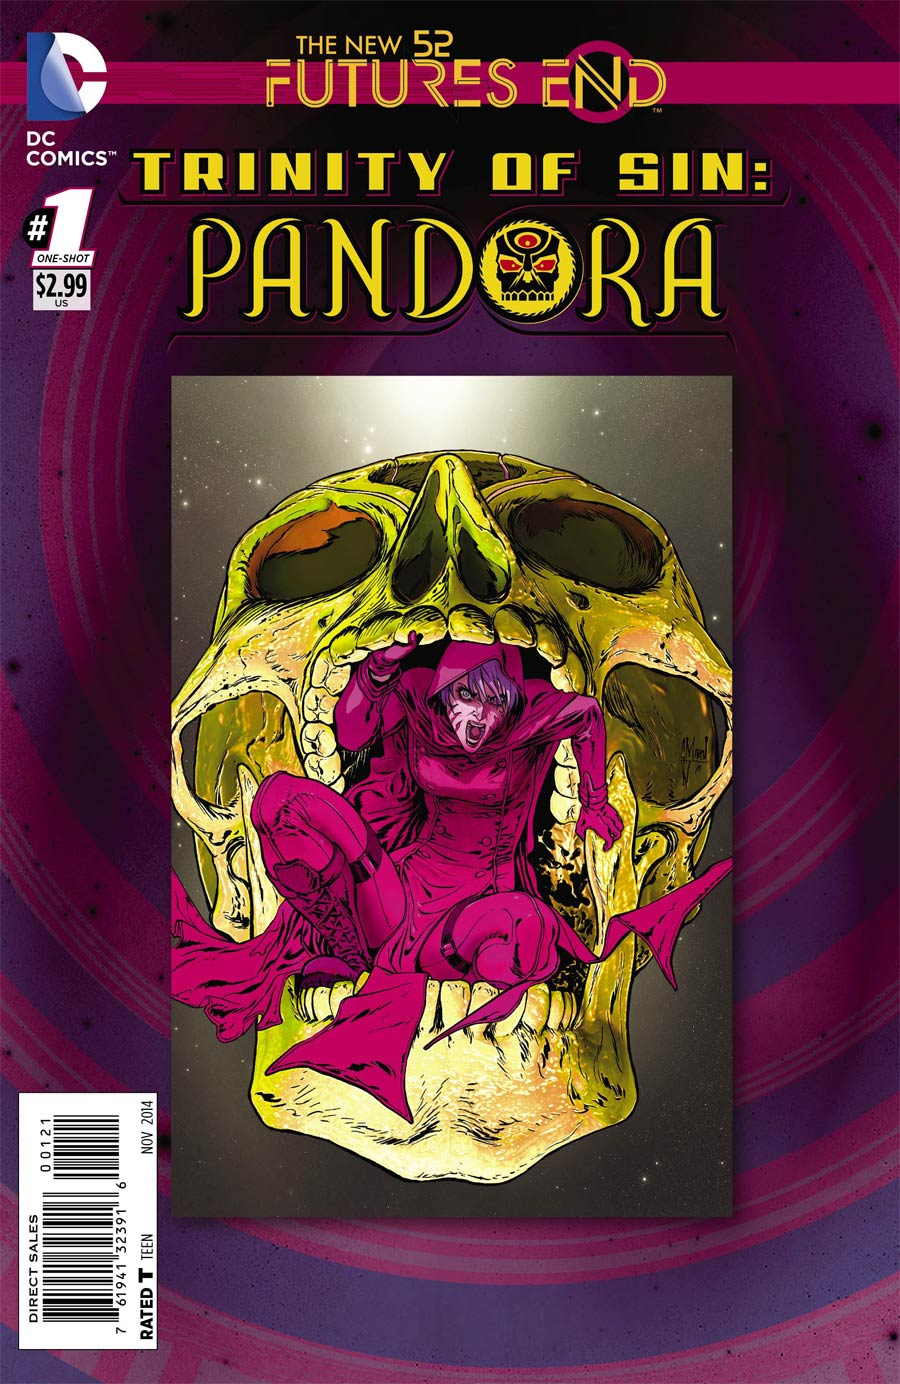 Trinity Of Sin Pandora Futures End #1 Cover B Standard Cover